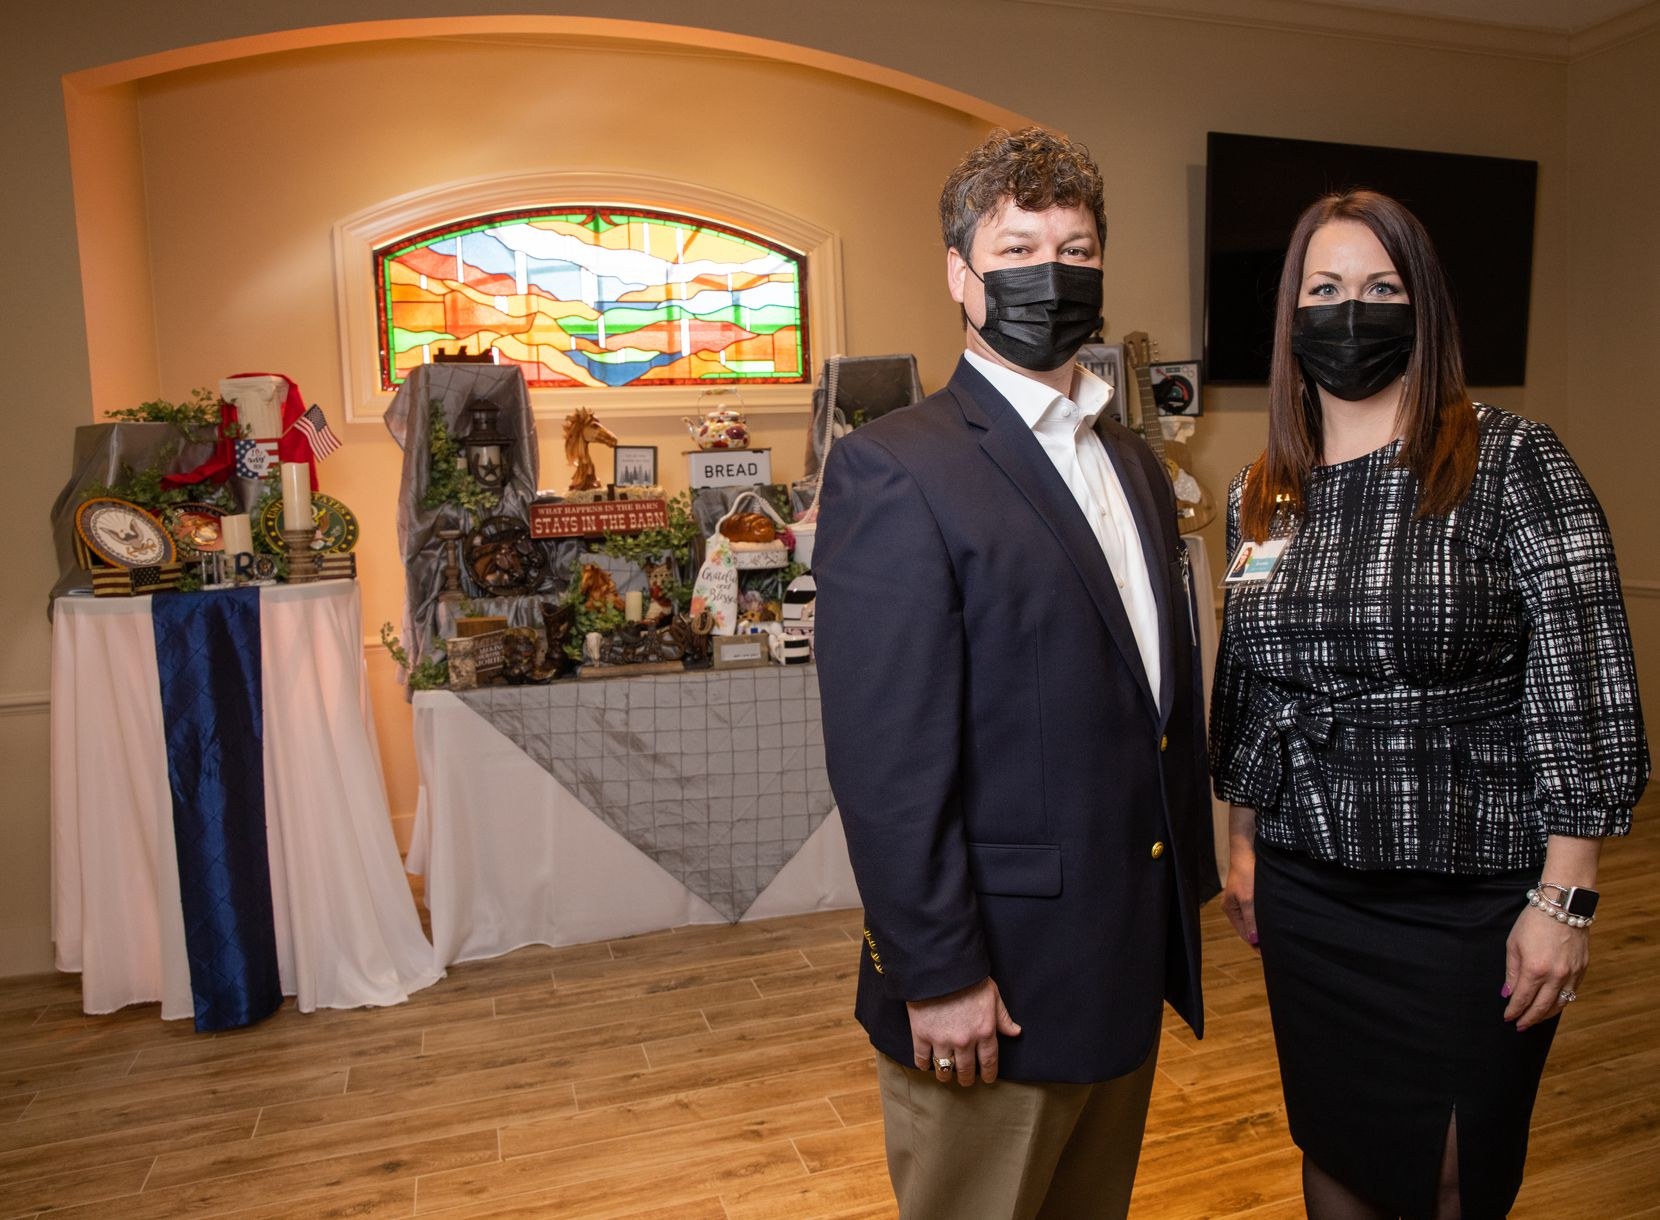 Sam Scott and Kristine Reed in front of the life story display at Ted Dickey West Funeral Home in Dallas.